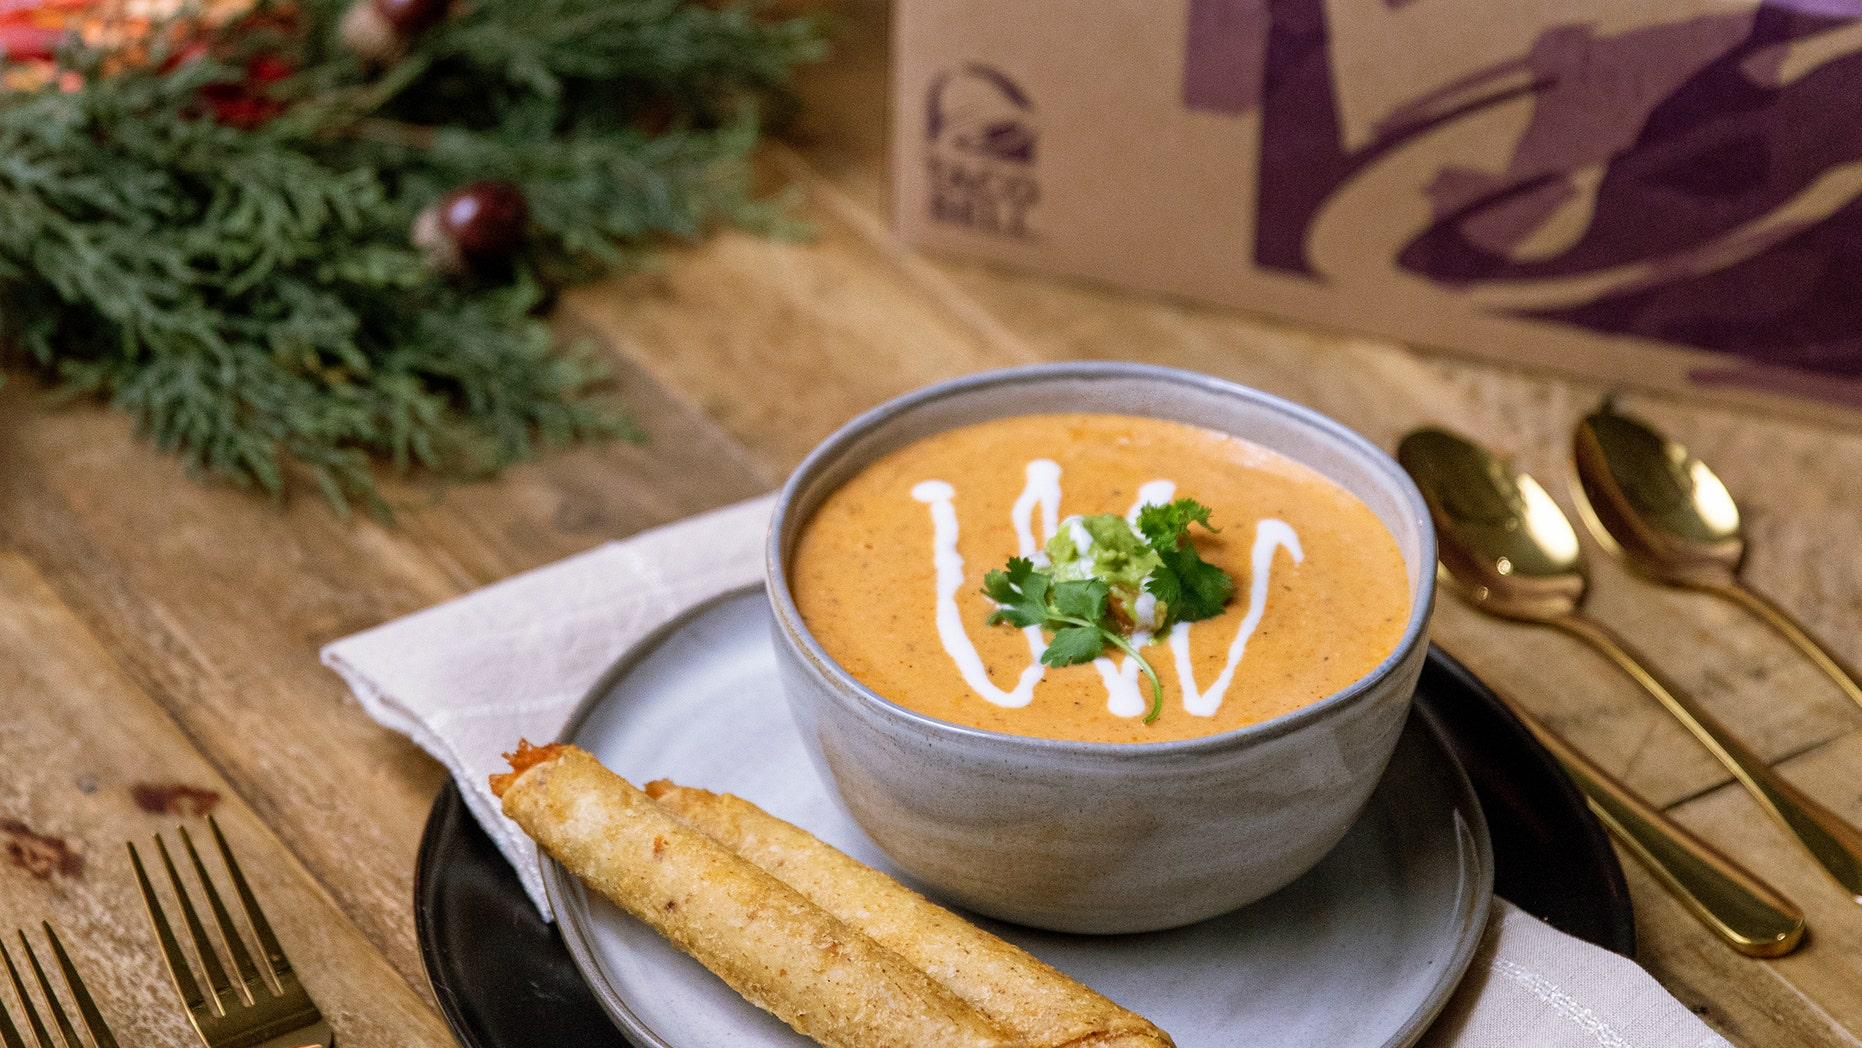 Taco Bell has released a new party pack and, naturally, a new recipe for bisque just in time for the holidays.